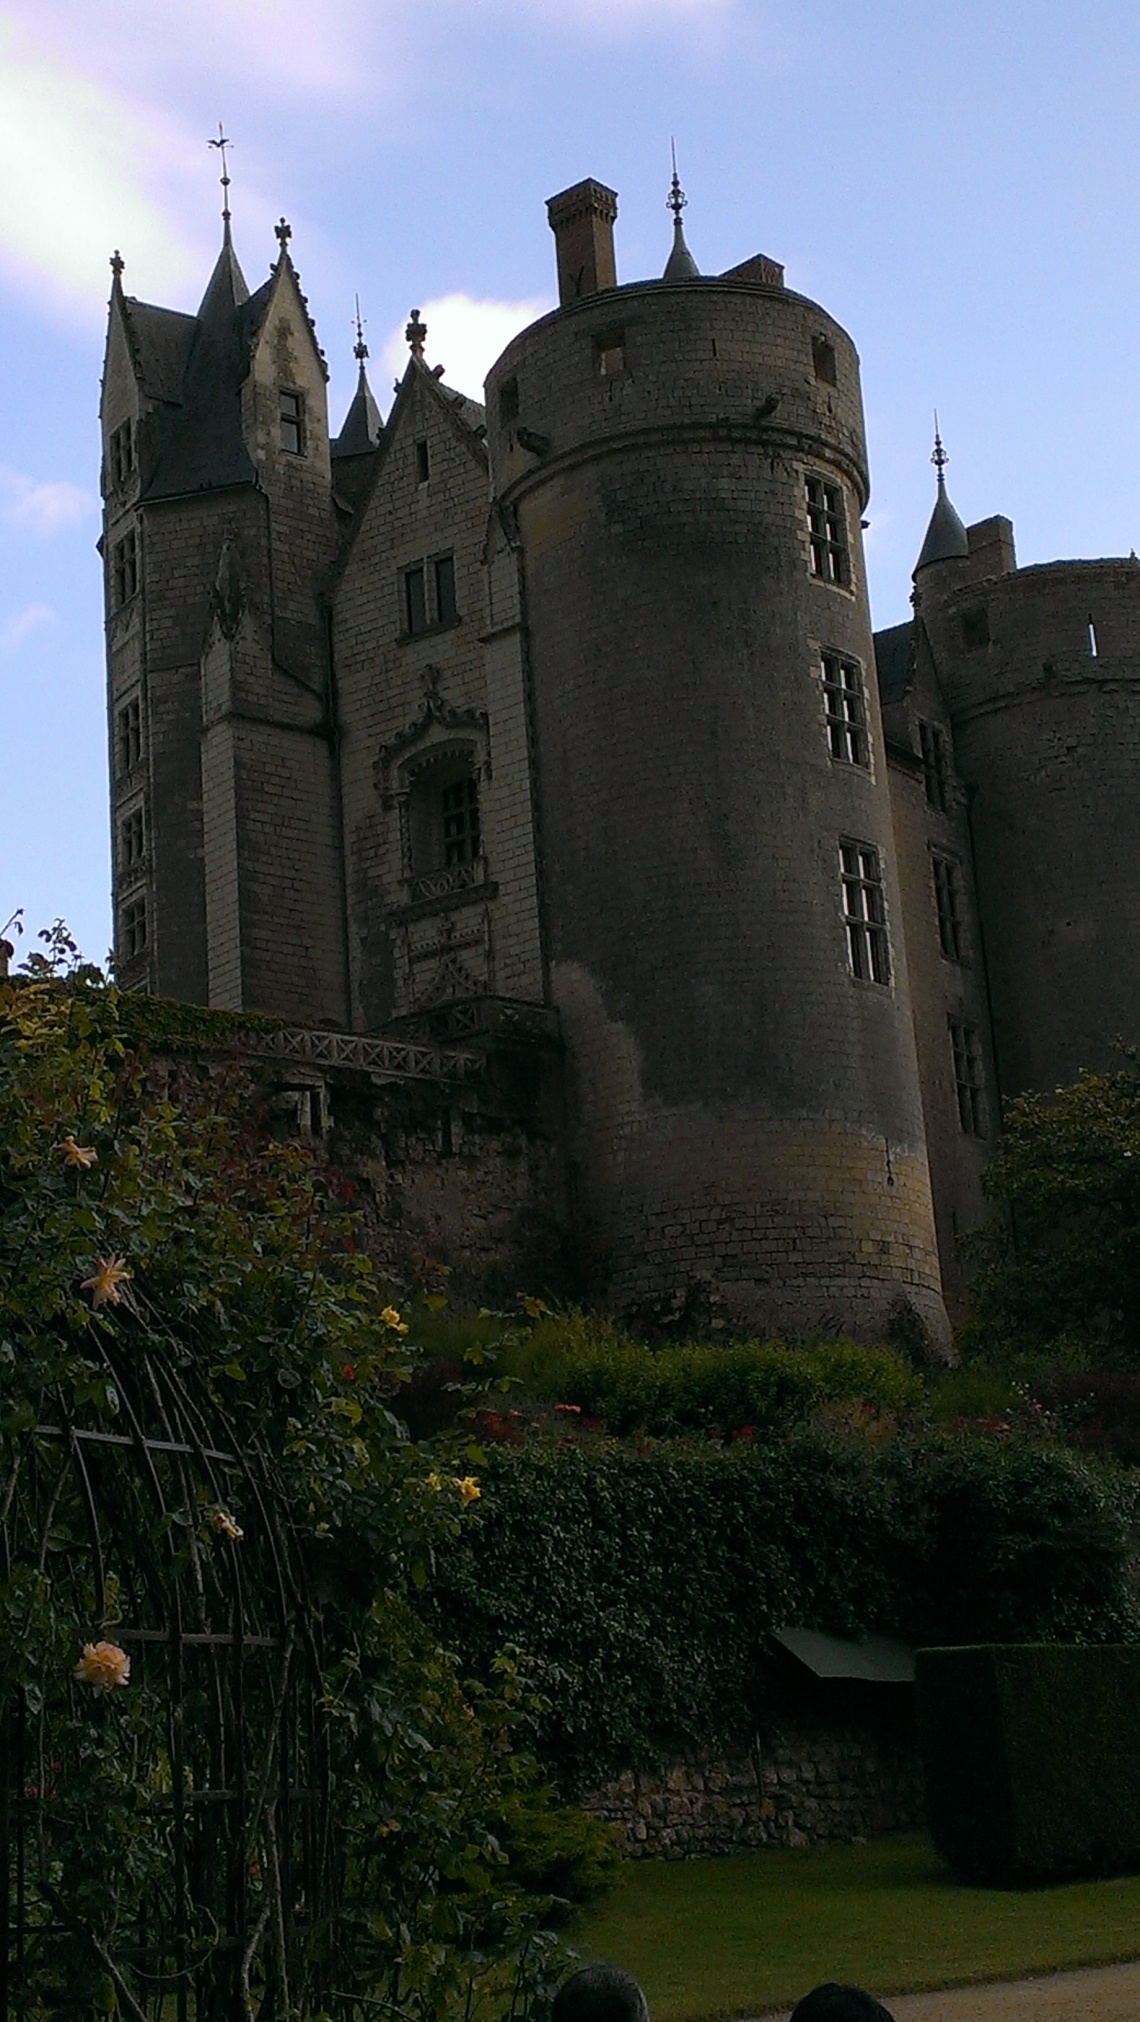 A Castle in the park